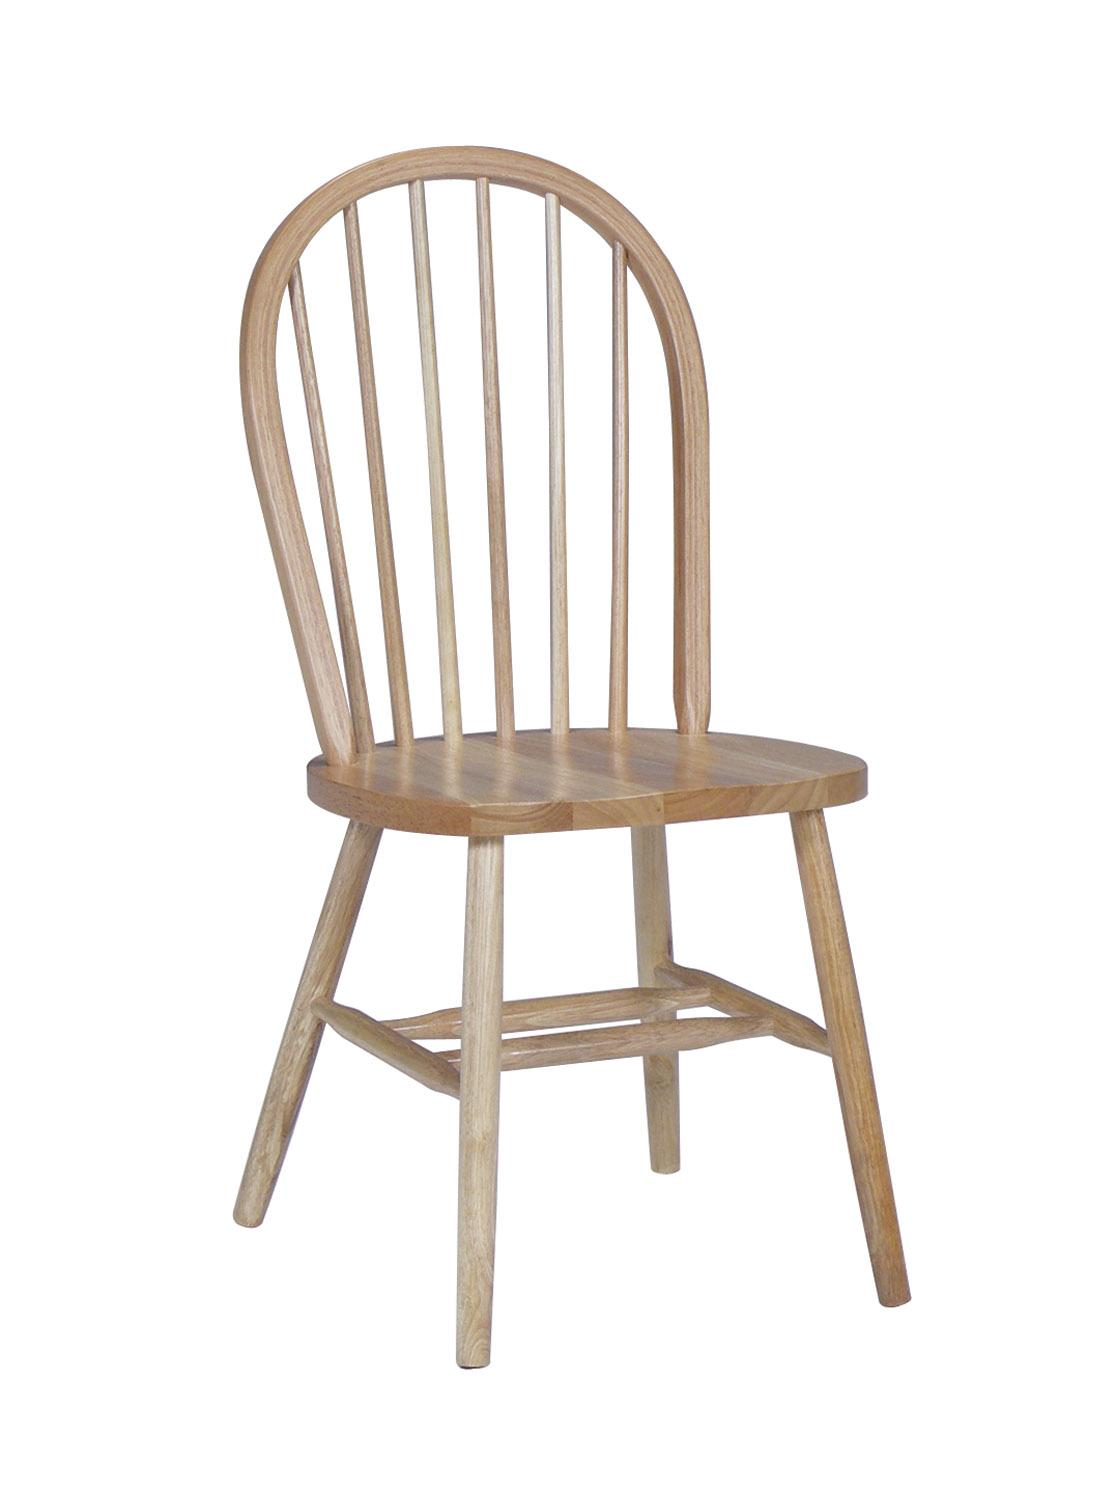 John Thomas Dining Essentials Windsor Dining Side Chair - Item Number: C01-112